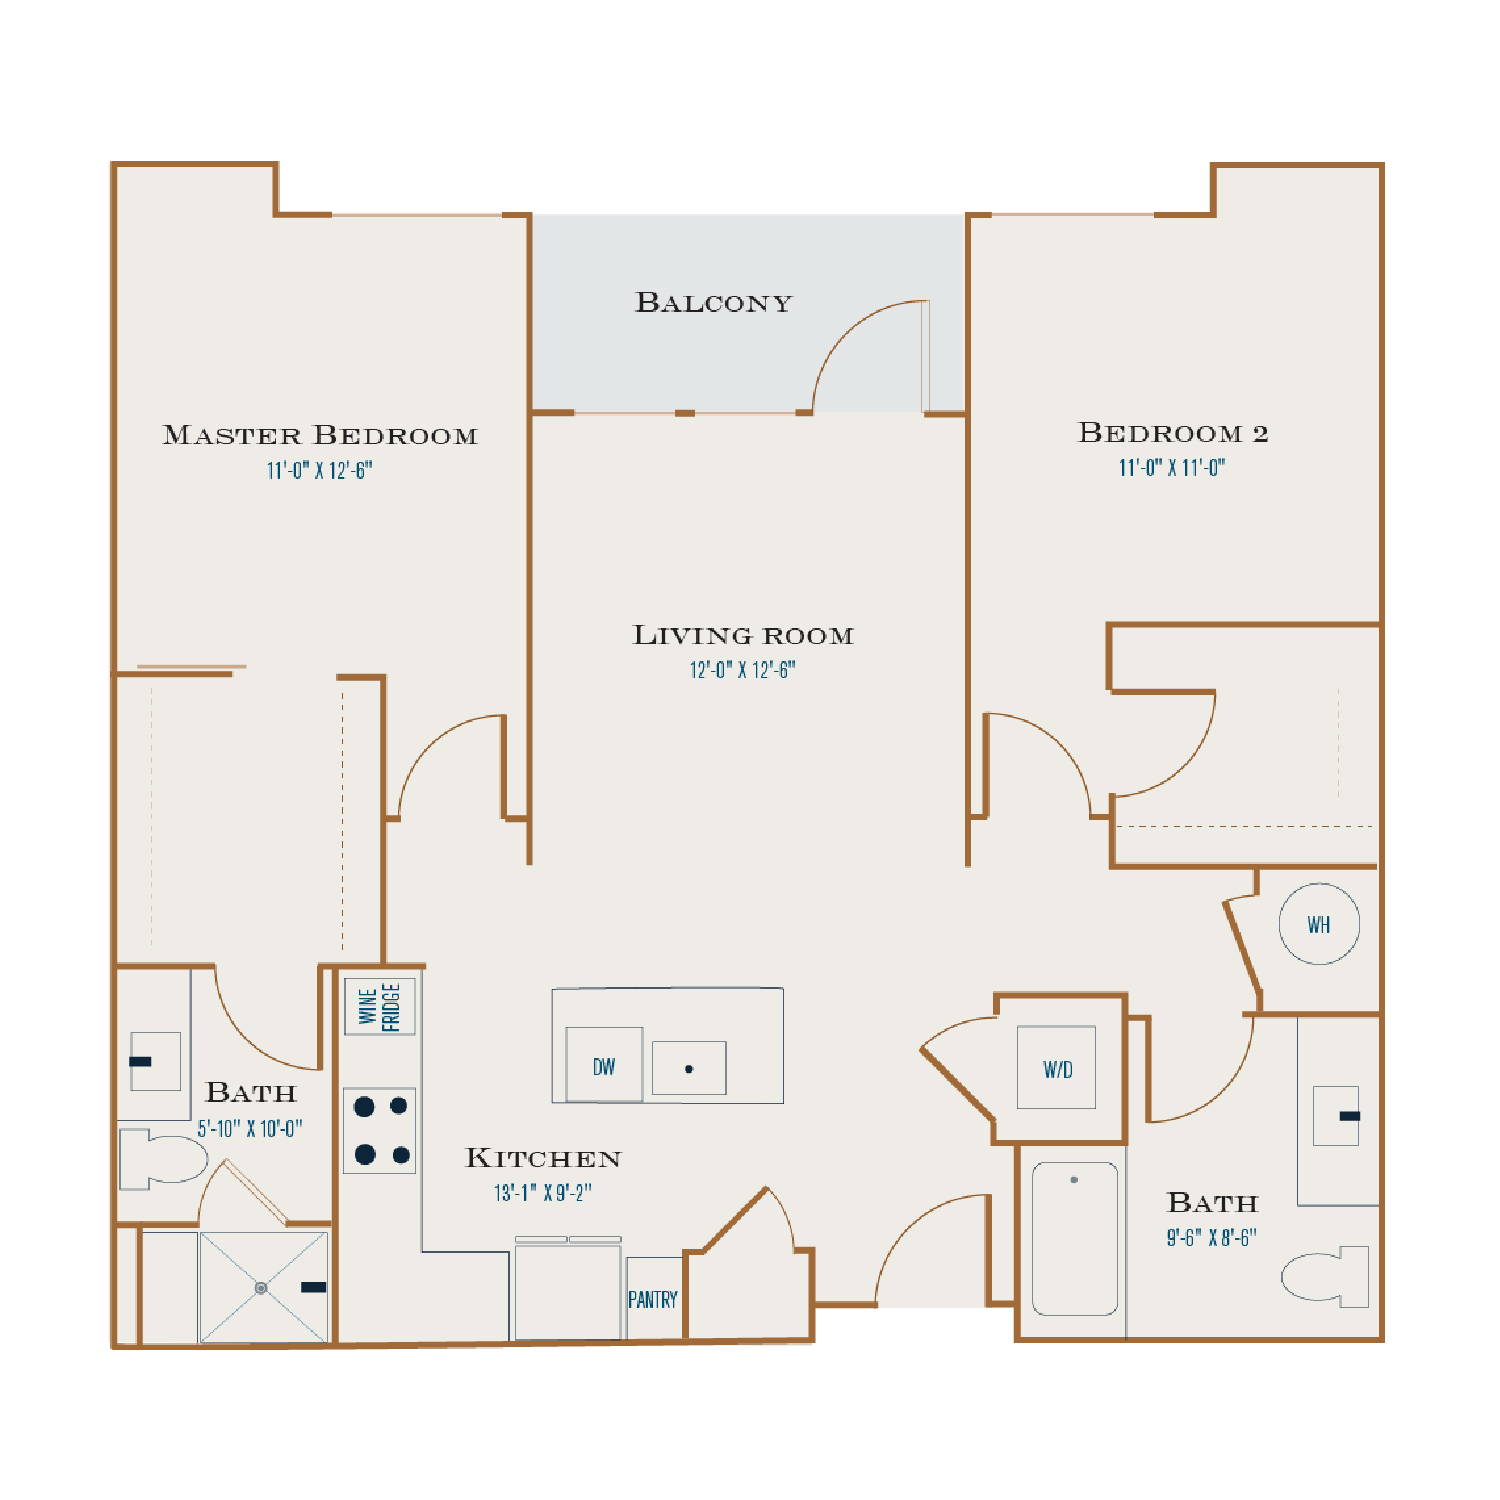 B Two floor plan diagram. Two bedrooms, two bathrooms,  an open kitchen and living area, a balcony, and a washer dryer.